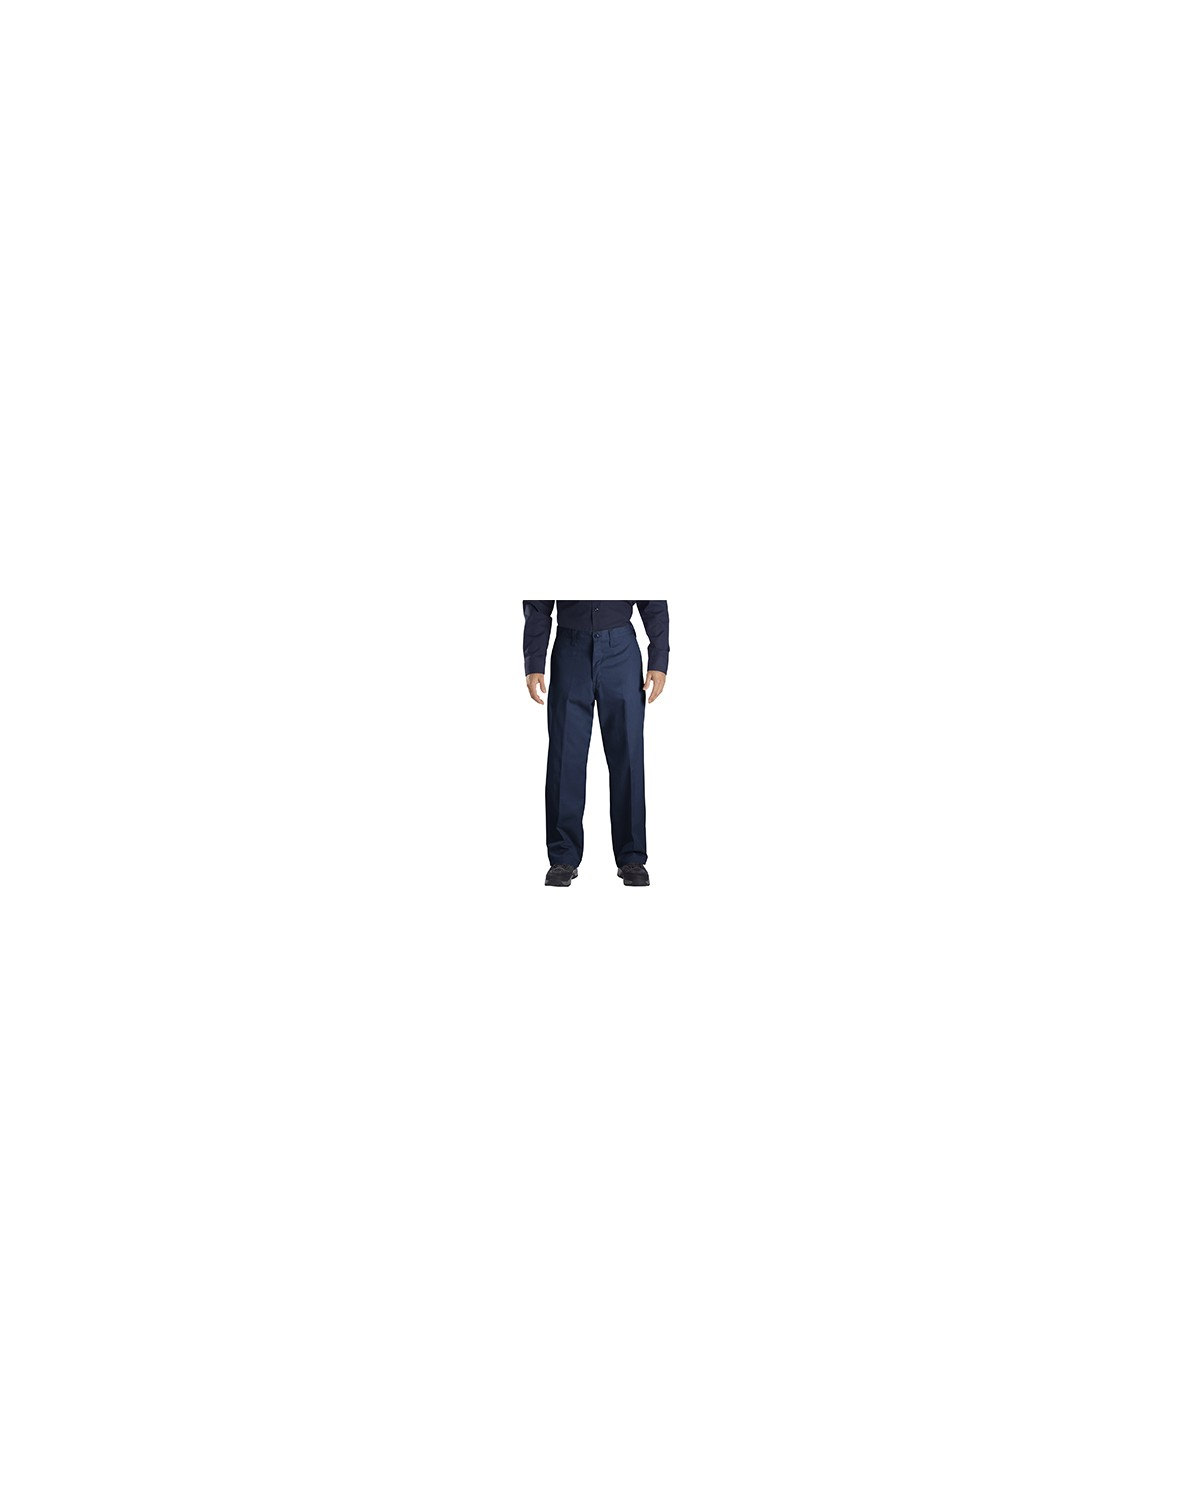 LP812 Dickies DARK NAVY 33